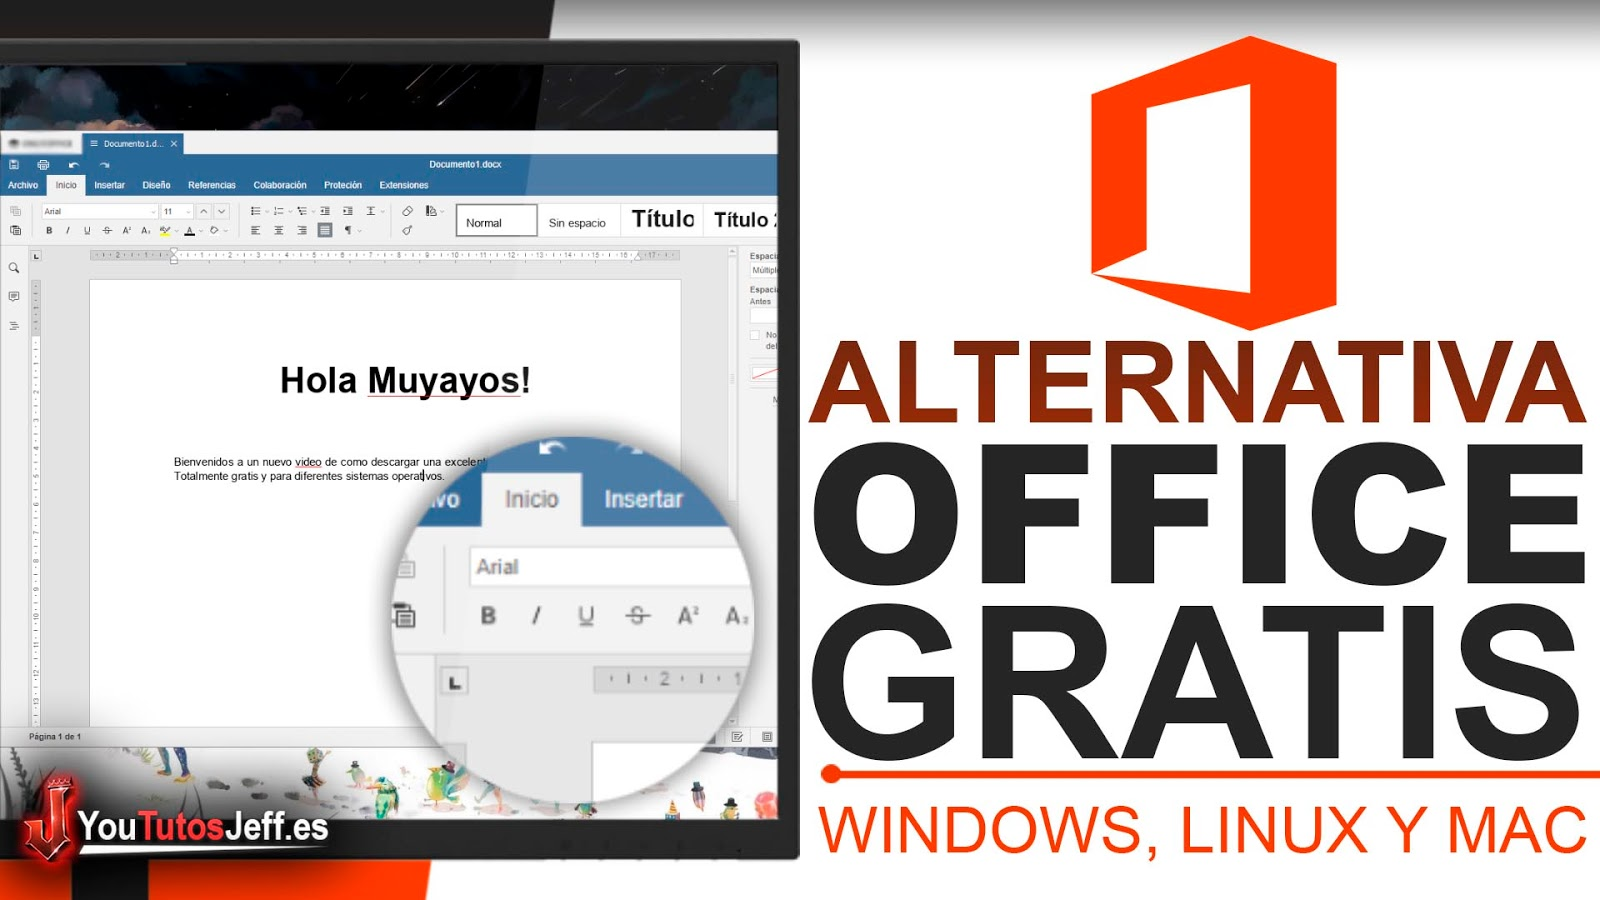 Alternativa Microsoft Office Gratis, Descargar OnlyOffice Ultima Versión